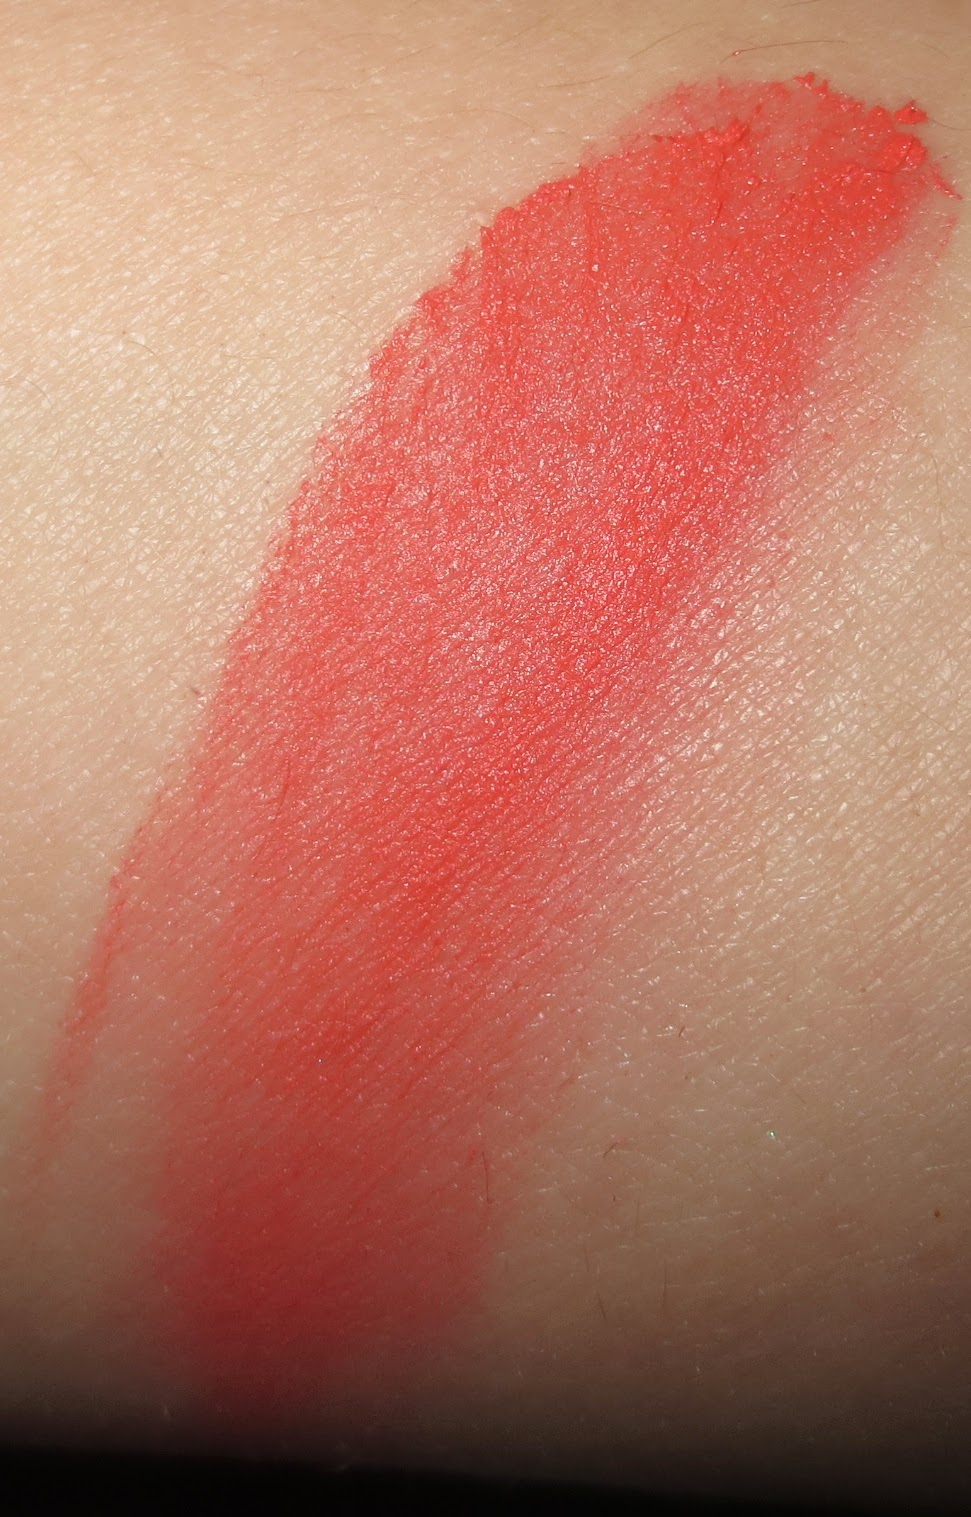 Revlon's Cream Blush in Coral Reef swatch